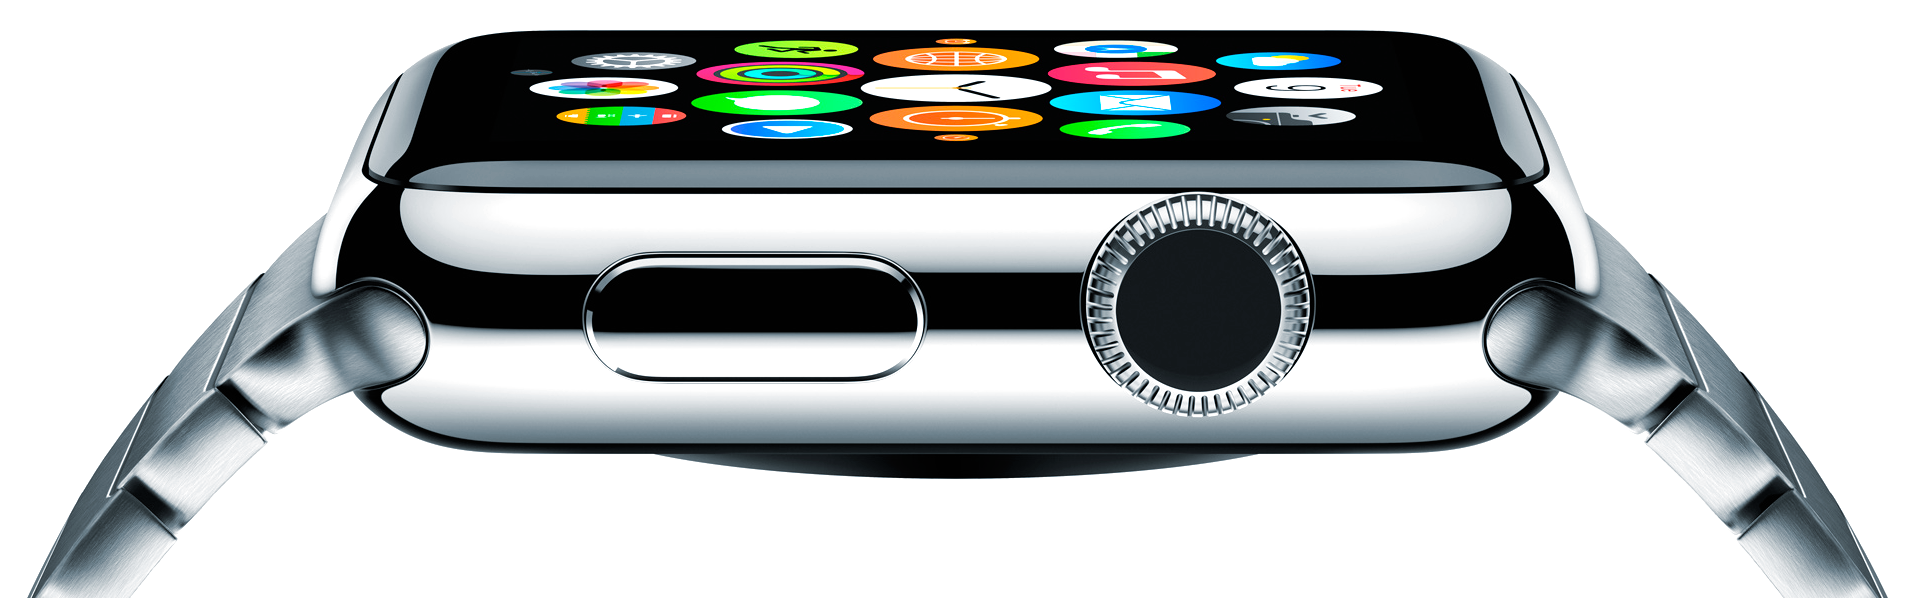 купить часы Apple Watch 38mm Stainless Steel